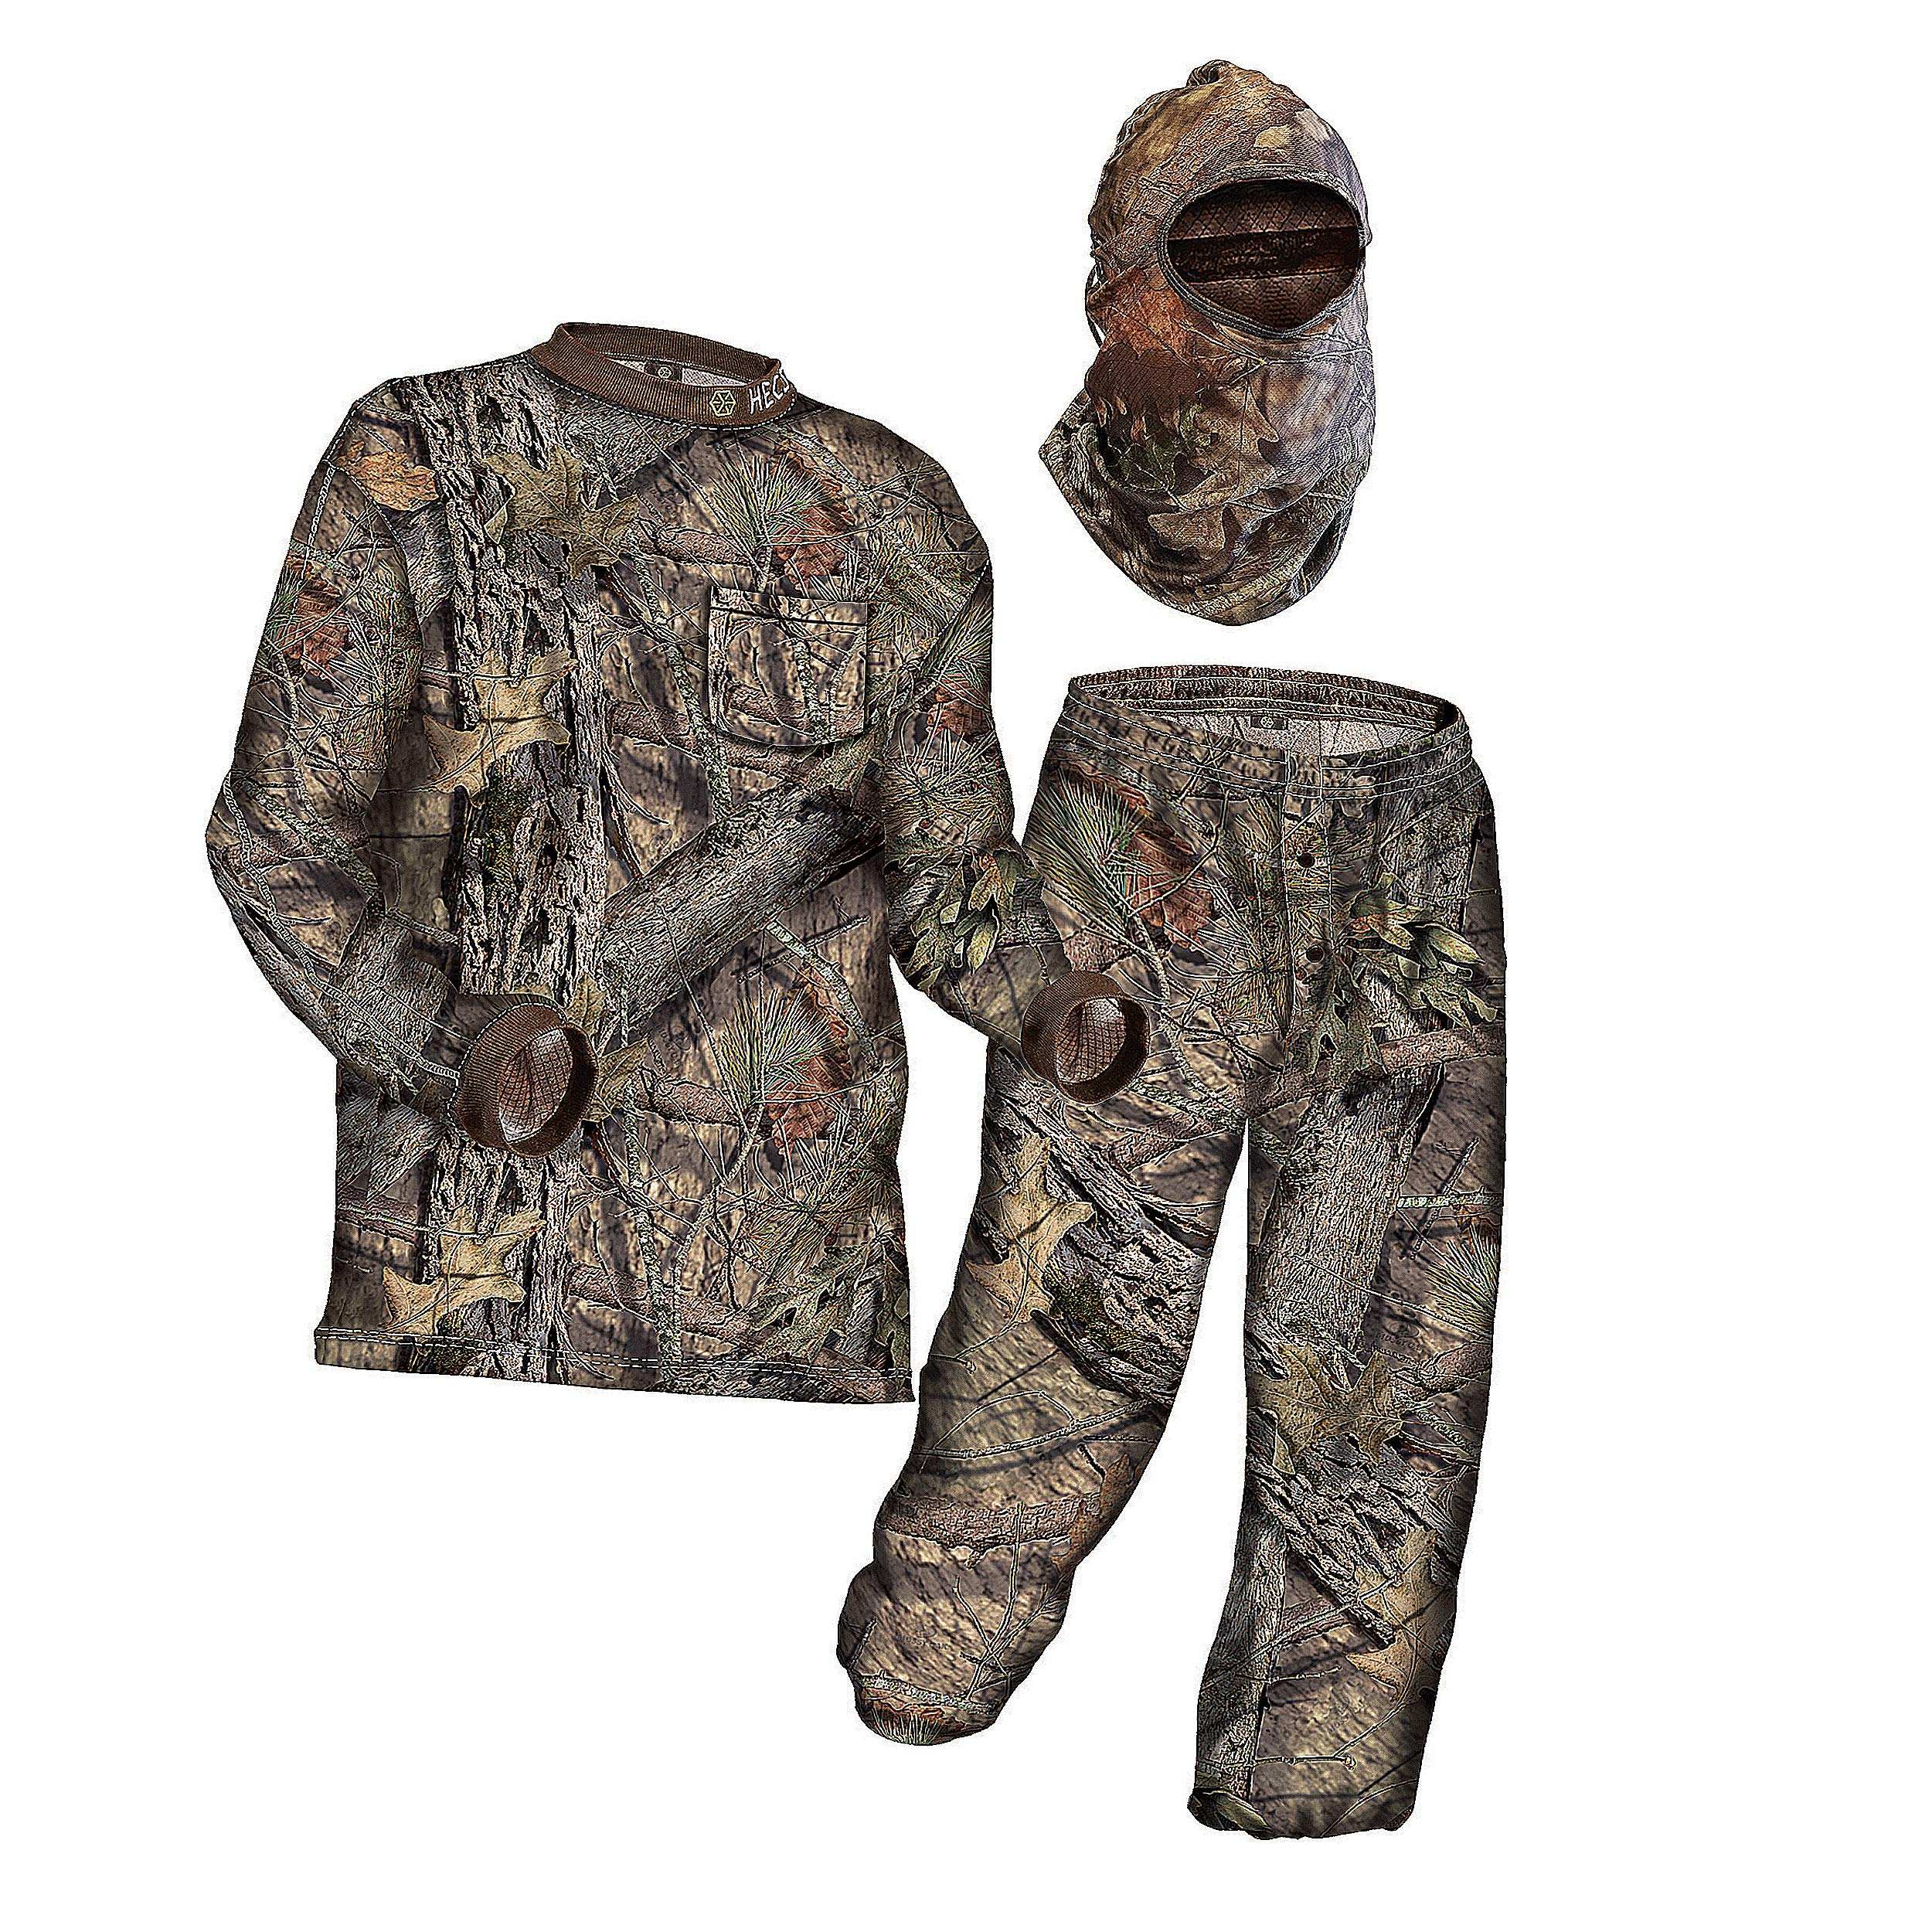 HECS Suit Deer Hunting Clothing with Human Energy Concealment Technology - Camo 3 Piece Shirt, Pants, Headcover - Lightweight Breathable in Mossy Oak Country & Realtree Xtra | Realtree, Medium by HECS